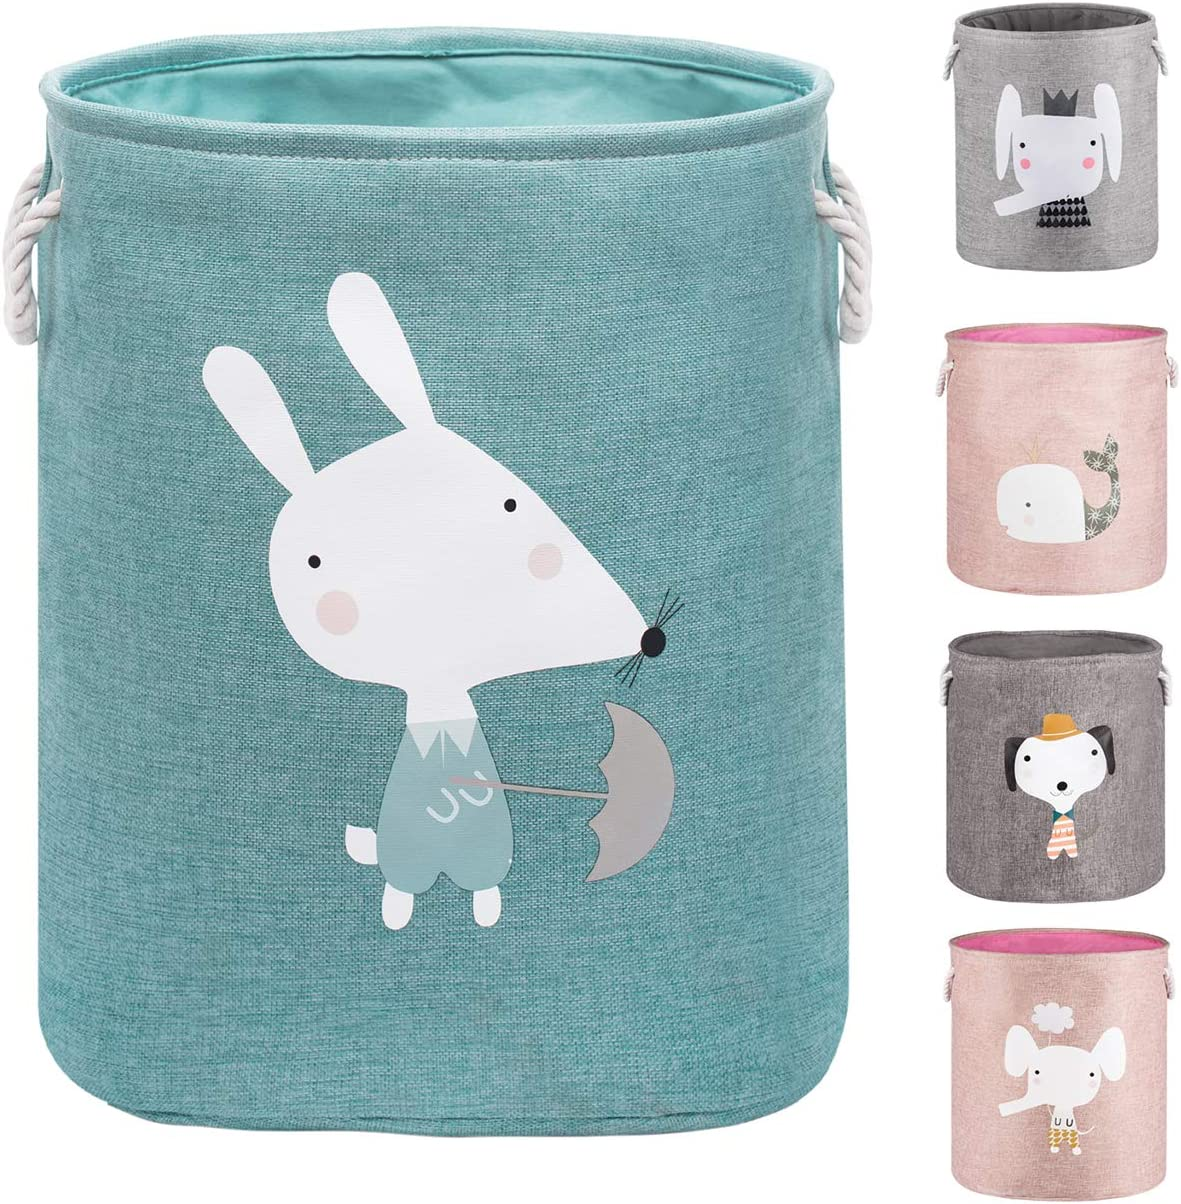 """AXHOP 22"""" Upgrade Large Collapsible Laundry Basket with Lid, Toy Storage Baskets Bin for Kids, Dog, Toys, Blanket, Clothes, Cute Animal Laundry Hamper(Green Mouse)"""